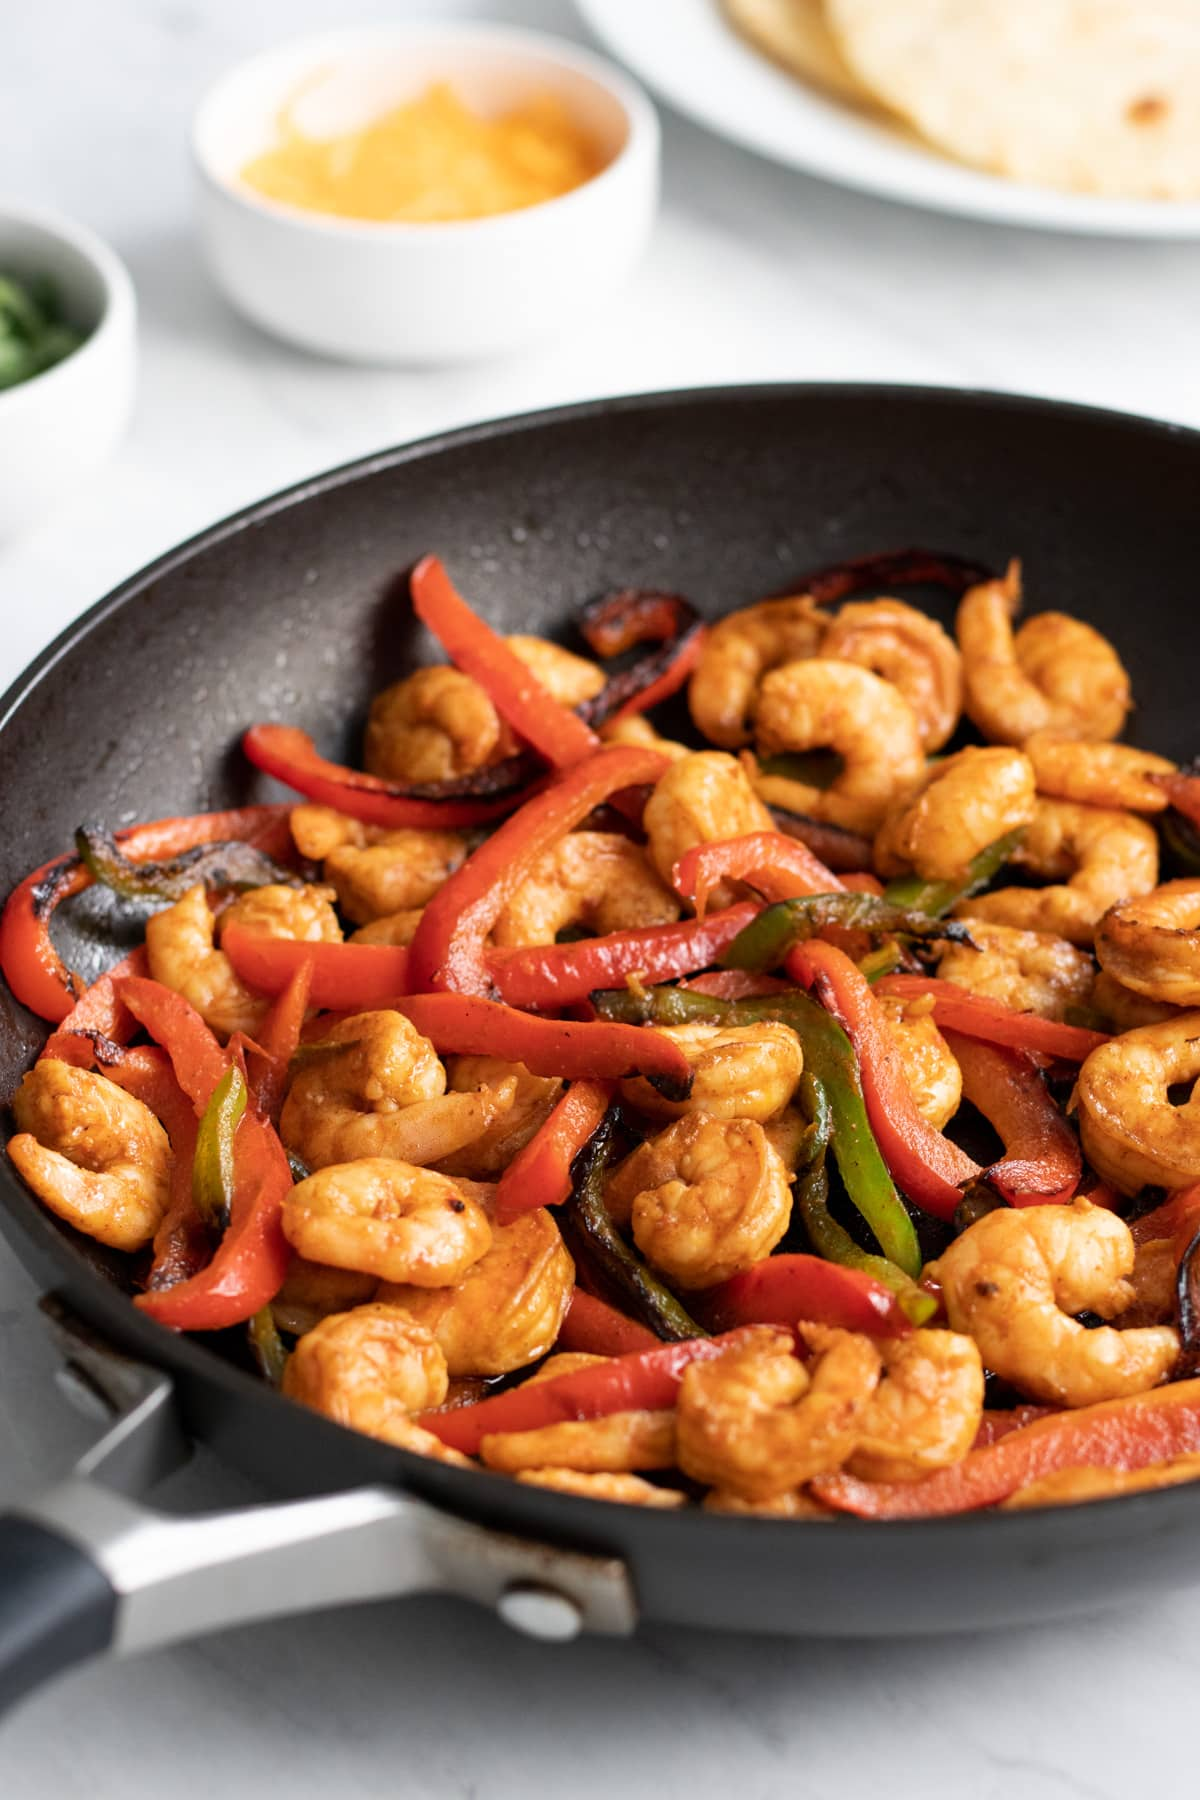 Looking into a skillet filled with low FODMAP shrimp fajitas. A plate of warm corn tortillas, and small bowls of cheddar cheese and sliced green onion tops sit in the background.